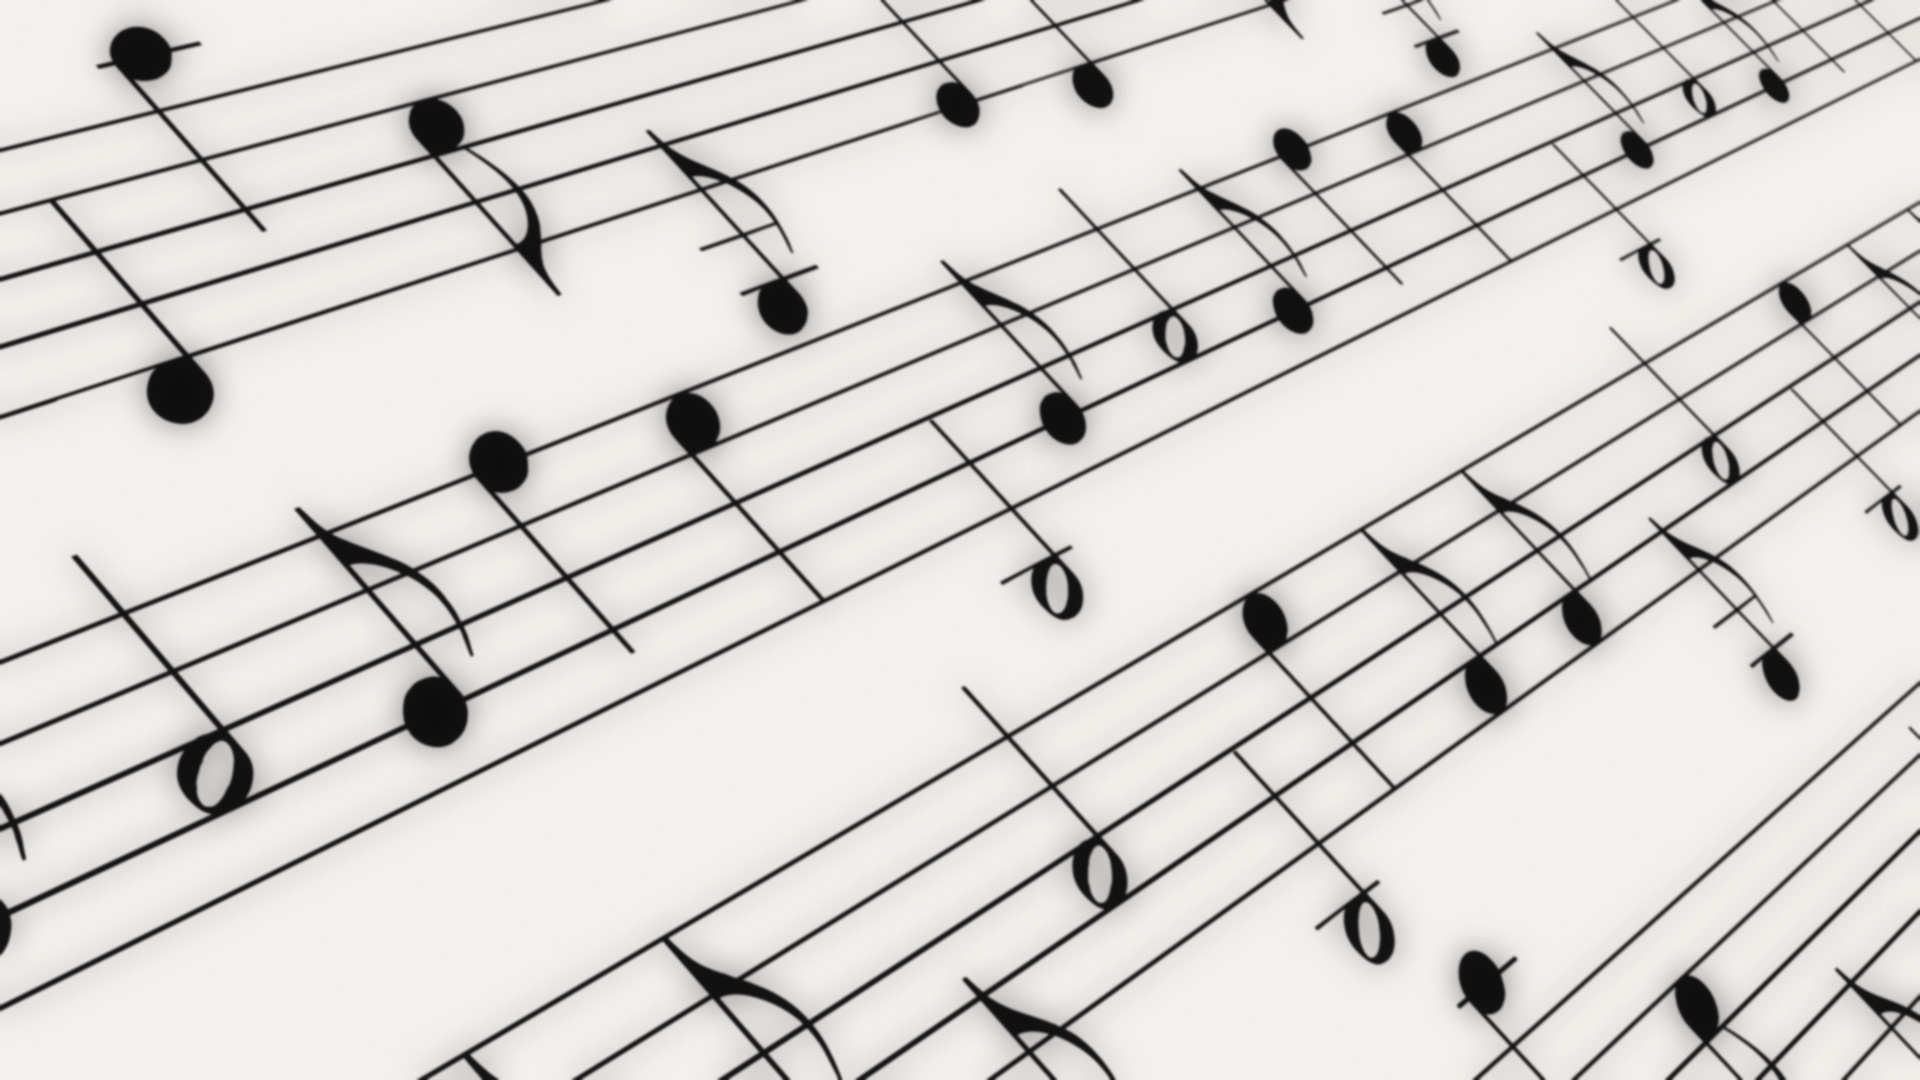 Music Notation Notes Music Staff Unlimited Free Stock Photos And Royalty Free